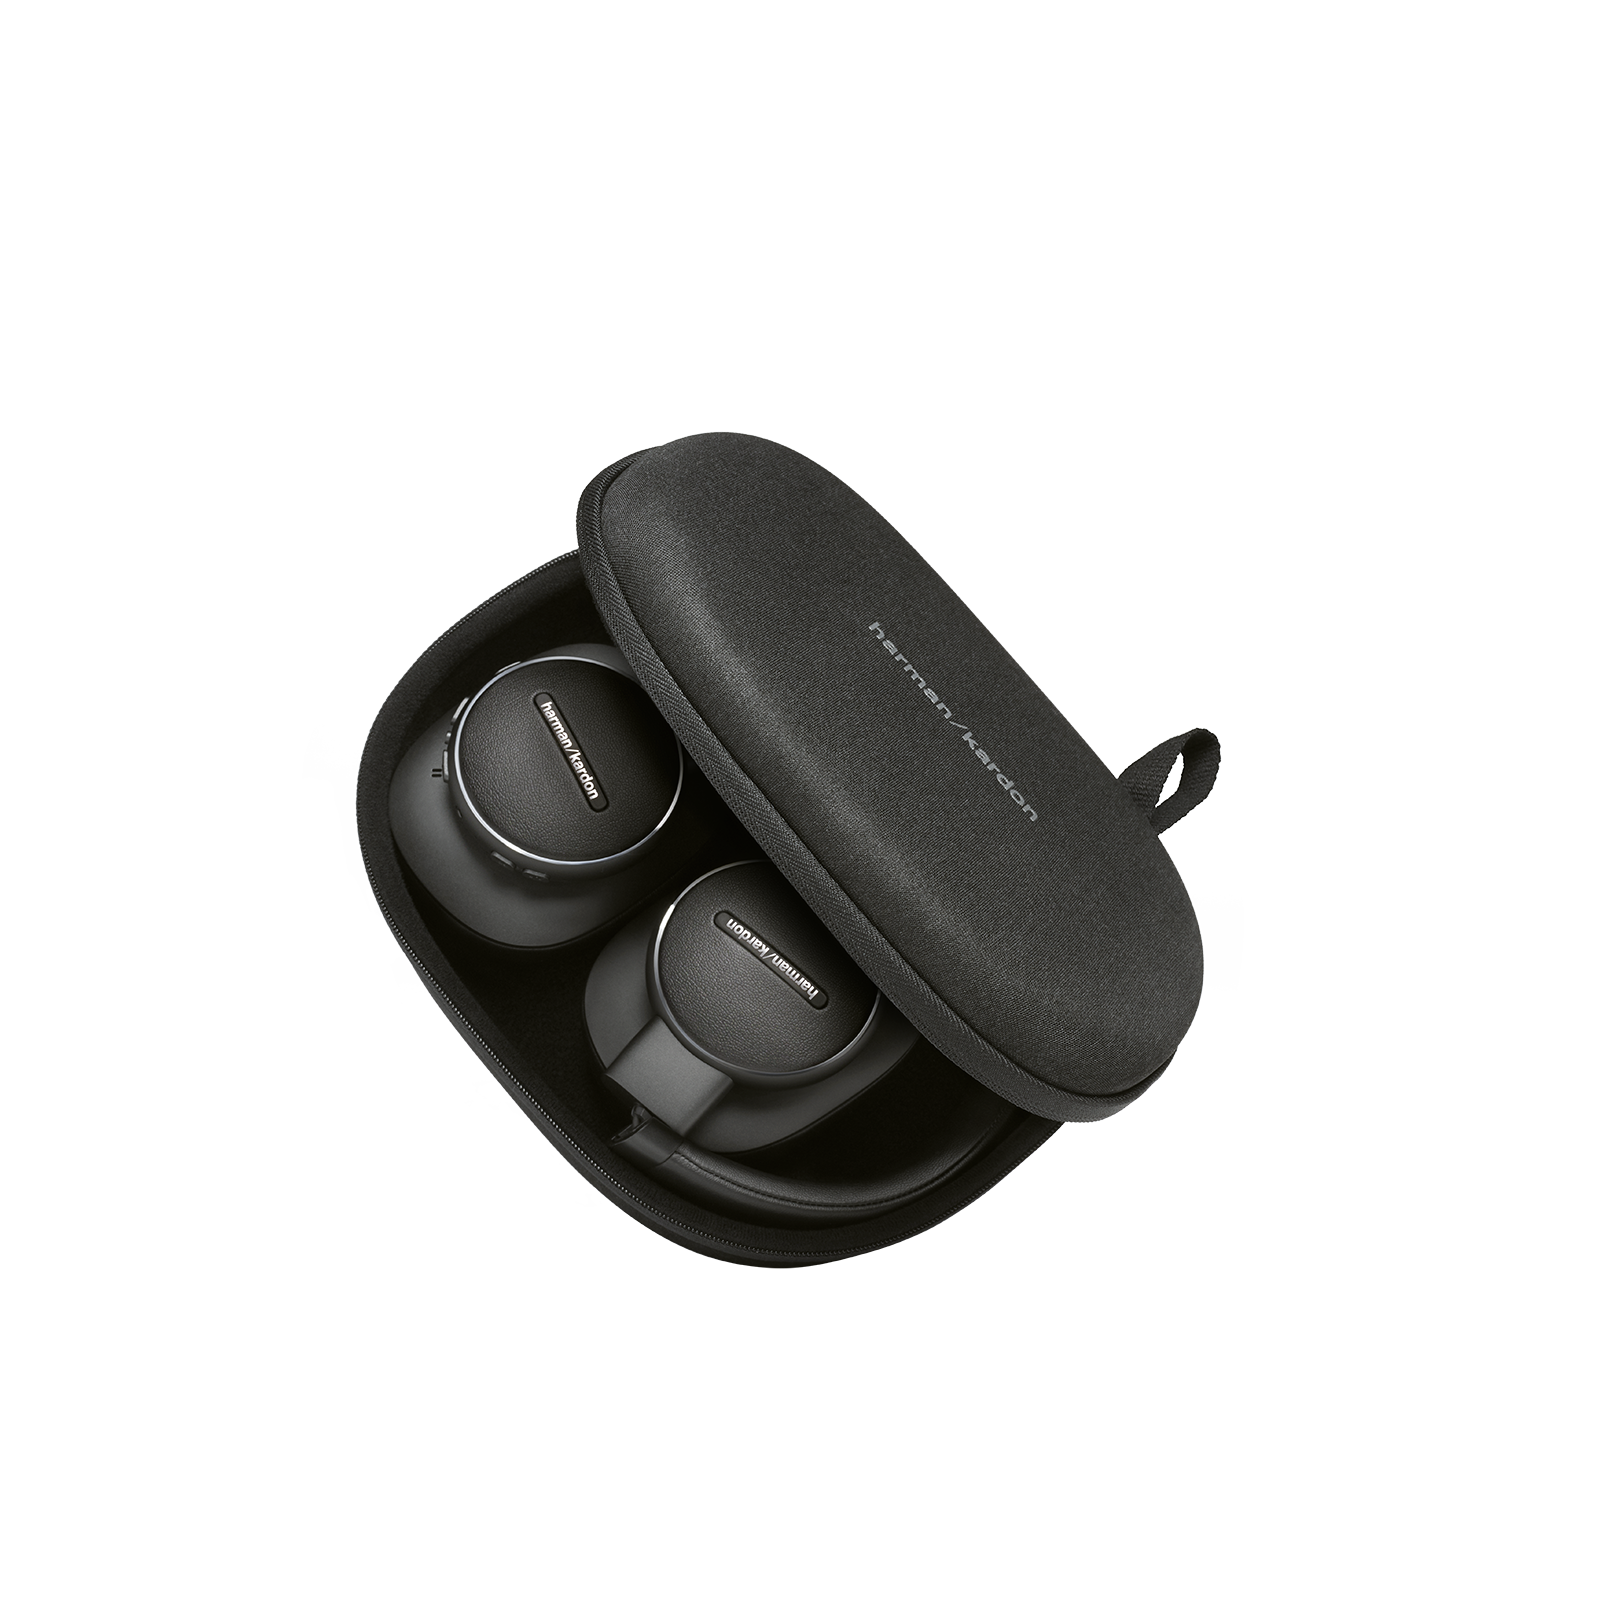 Harman Kardon FLY ANC - Black - Wireless Over-Ear NC Headphones - Detailshot 9